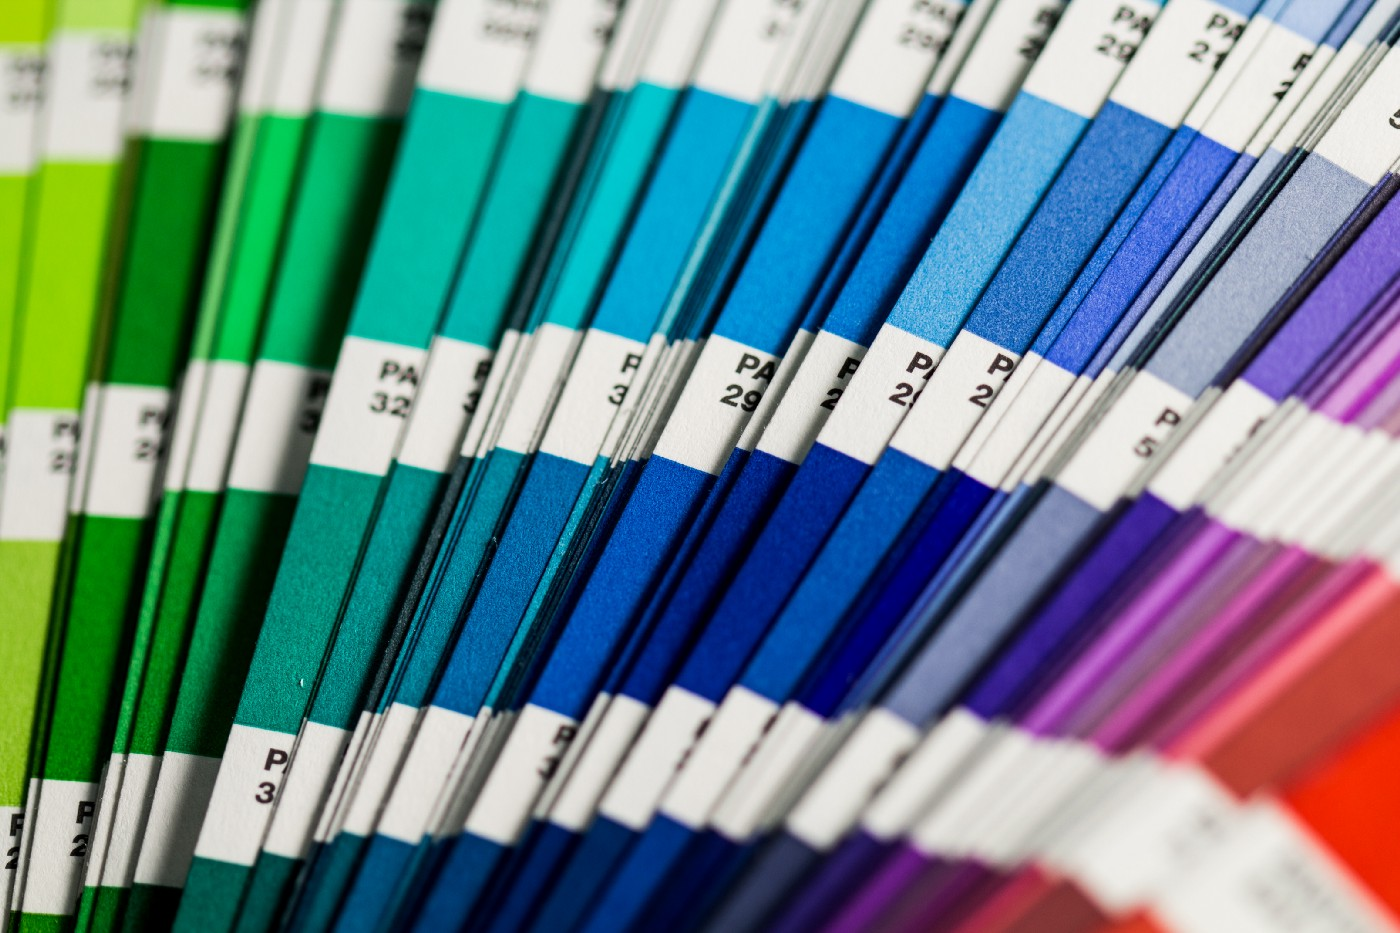 A collection of Pantone color swatches ranging from green to blue, to purple, to red.